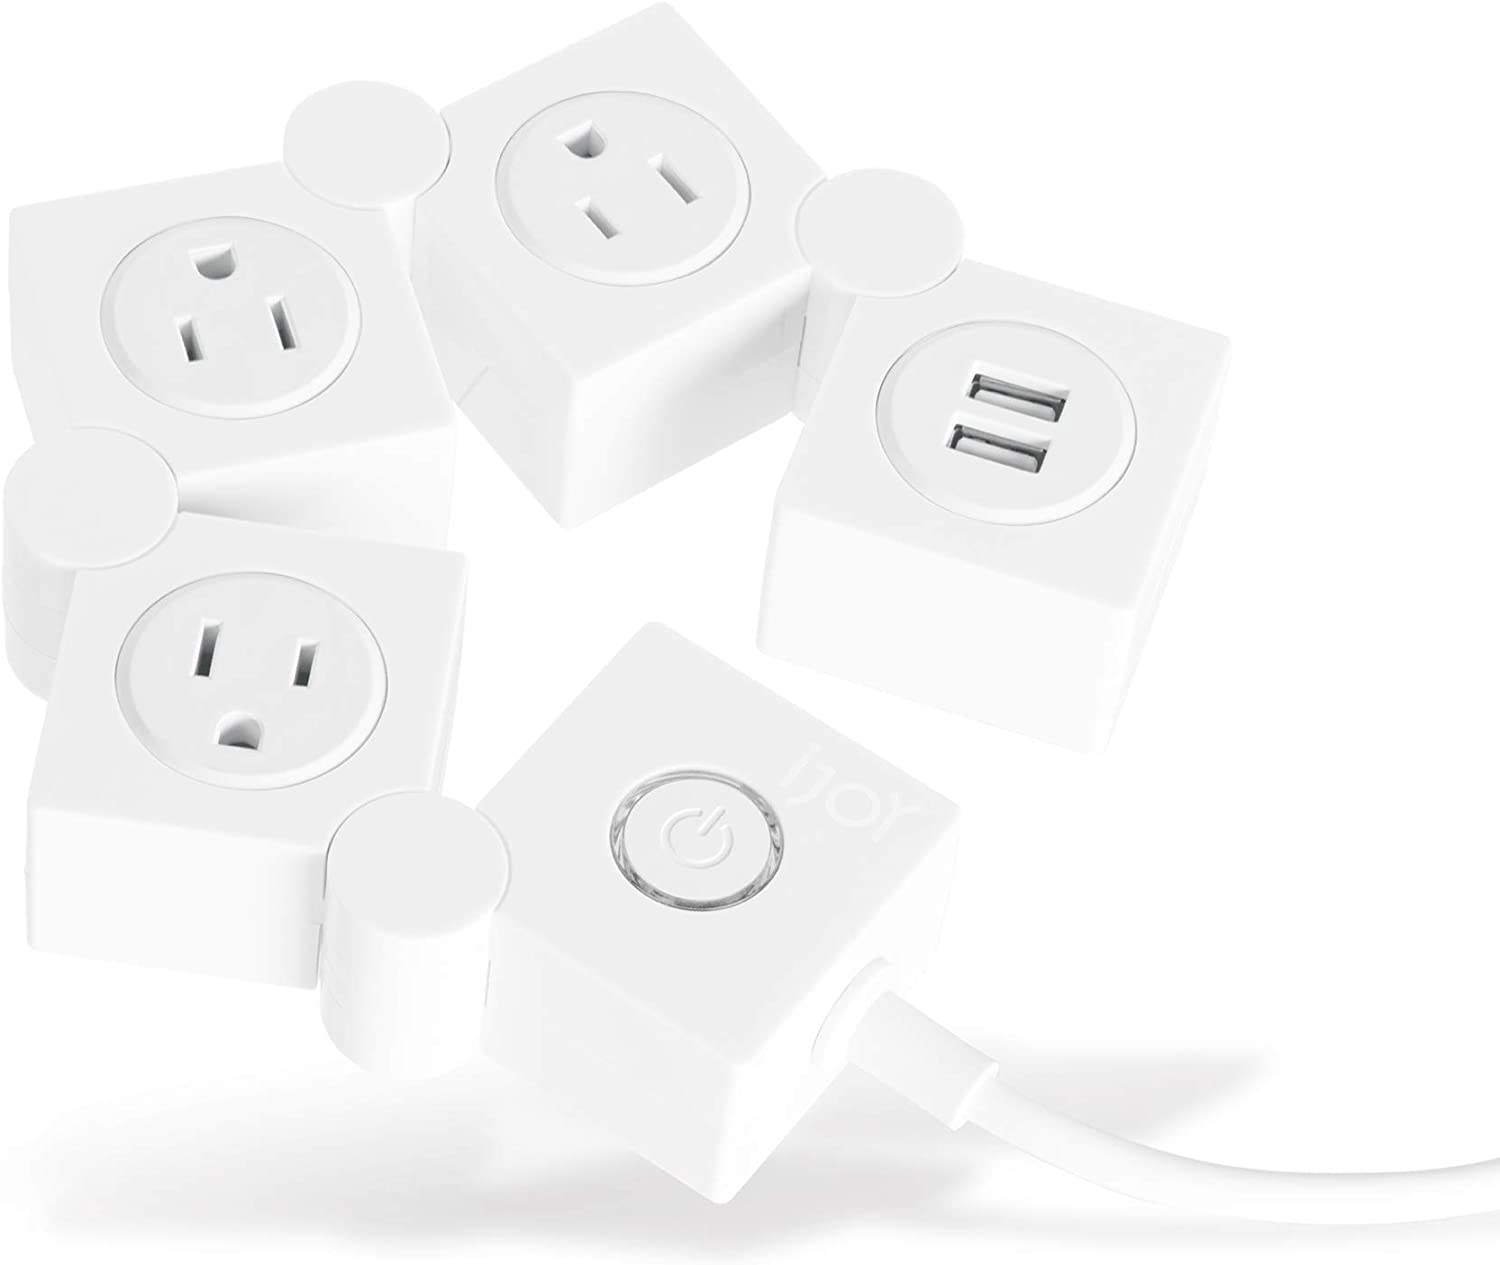 iJoy Decorative Surge Protector- 3 AC Outlets and 2 USB Charging Ports with 5 Ft Extension Cord- Power Strip Outlet Extender for Home Office, Dorm, Room and More (White)